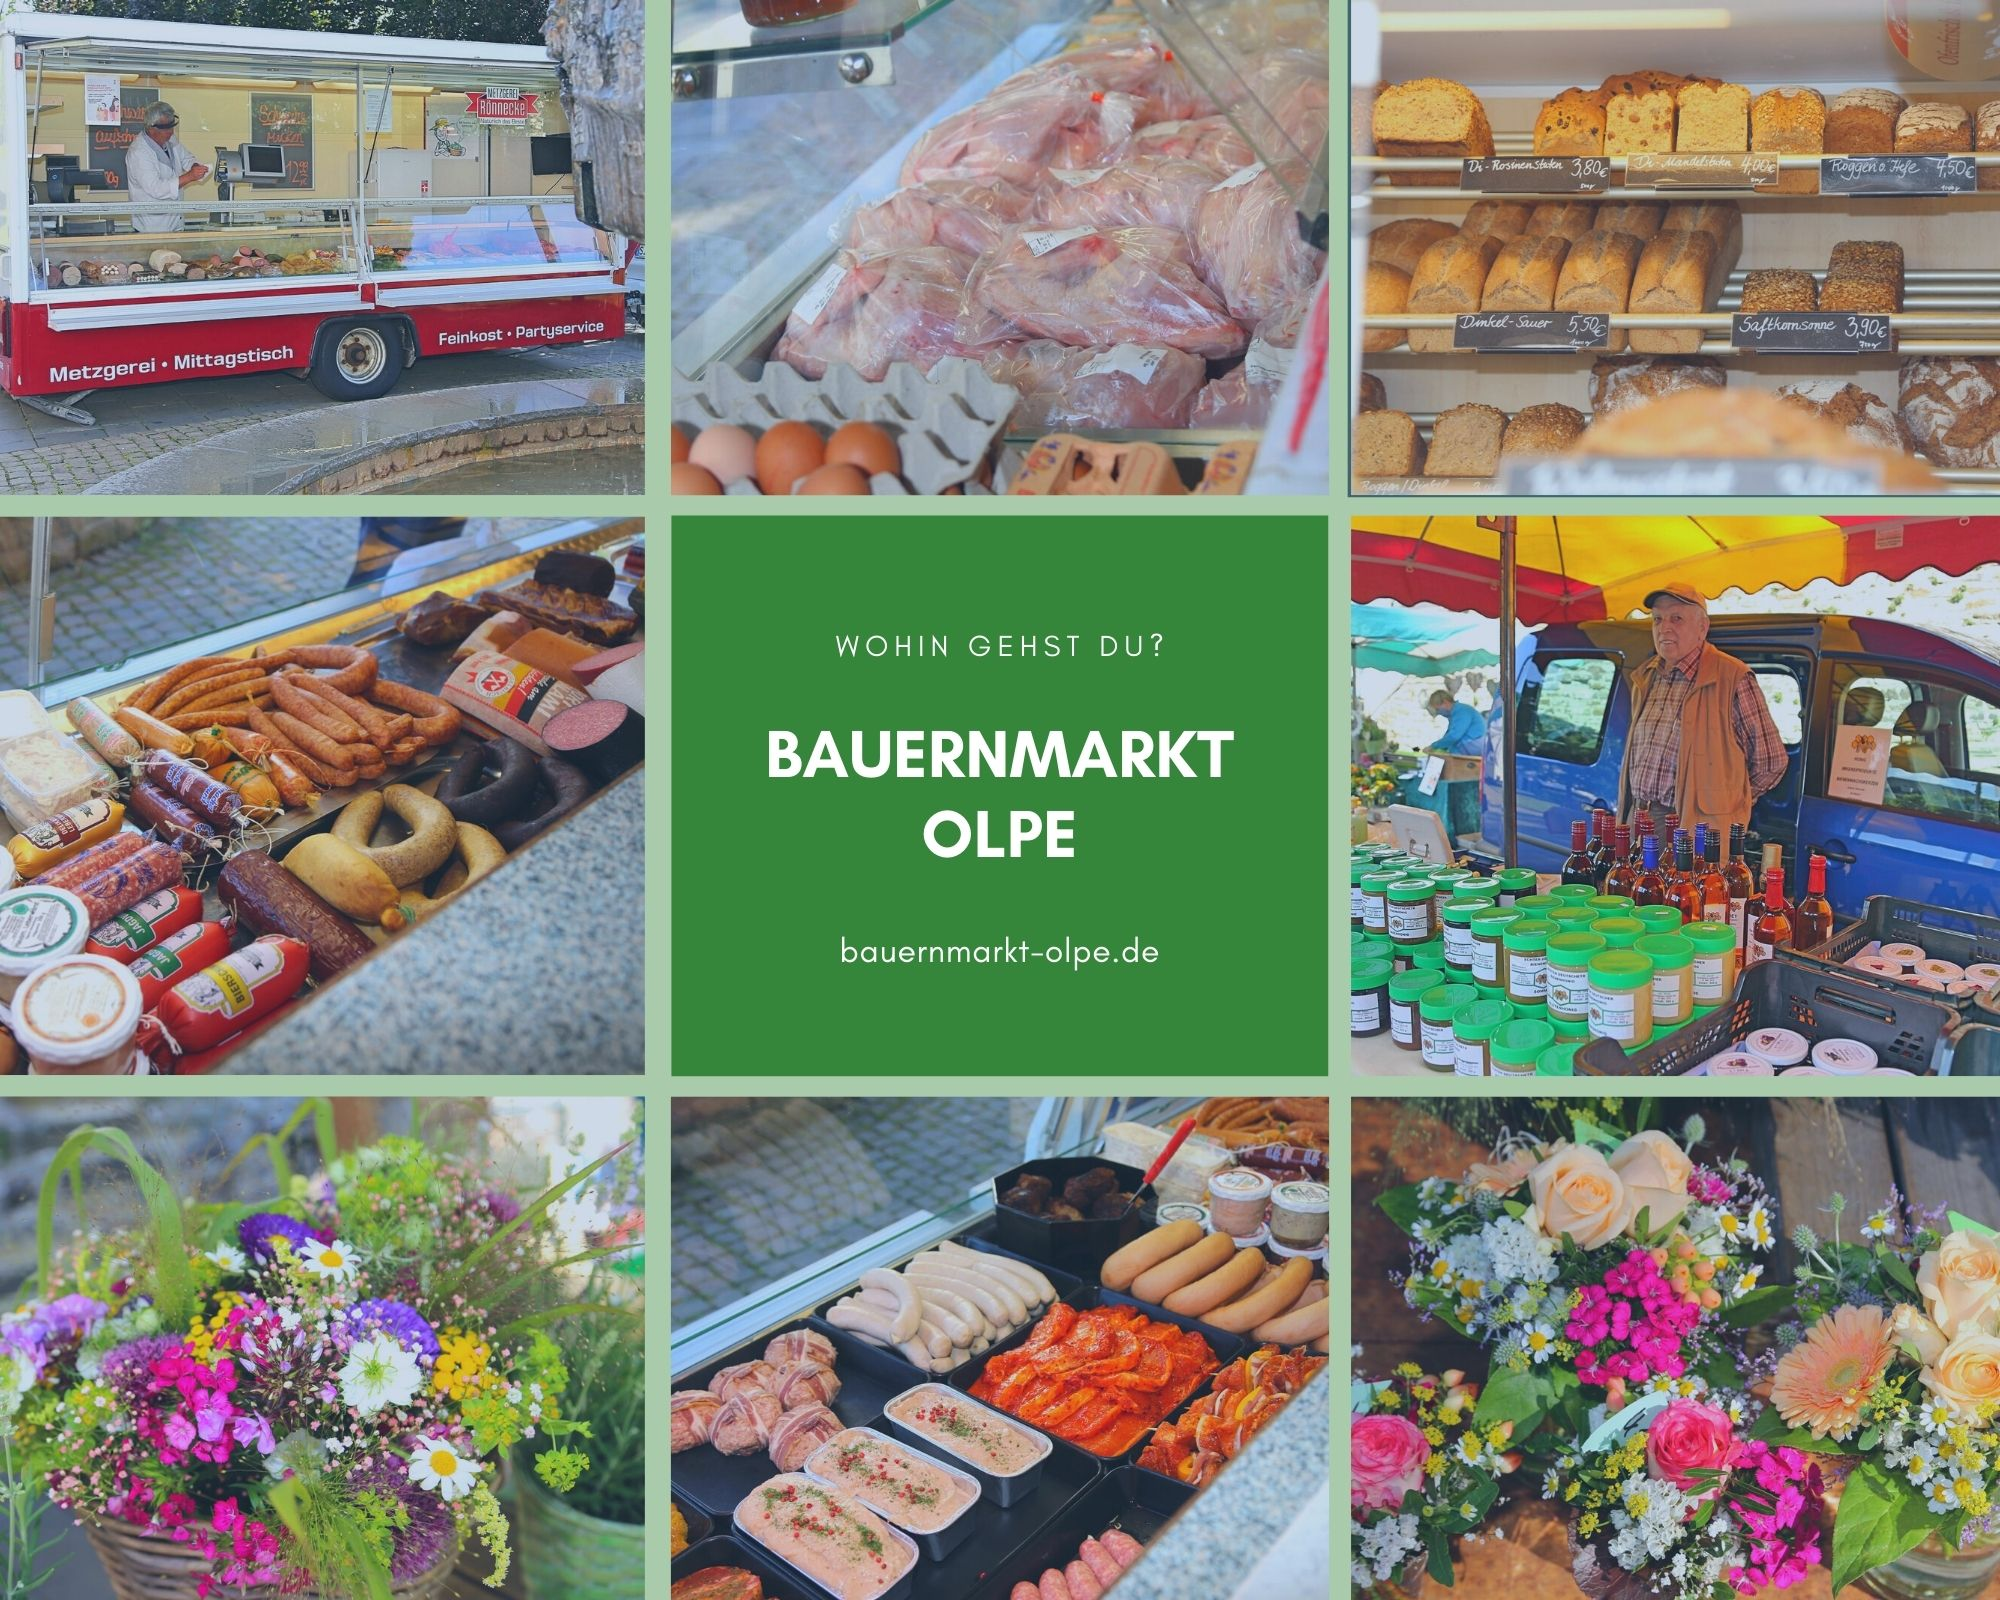 bauernmarkt-olpe-foto-collage1